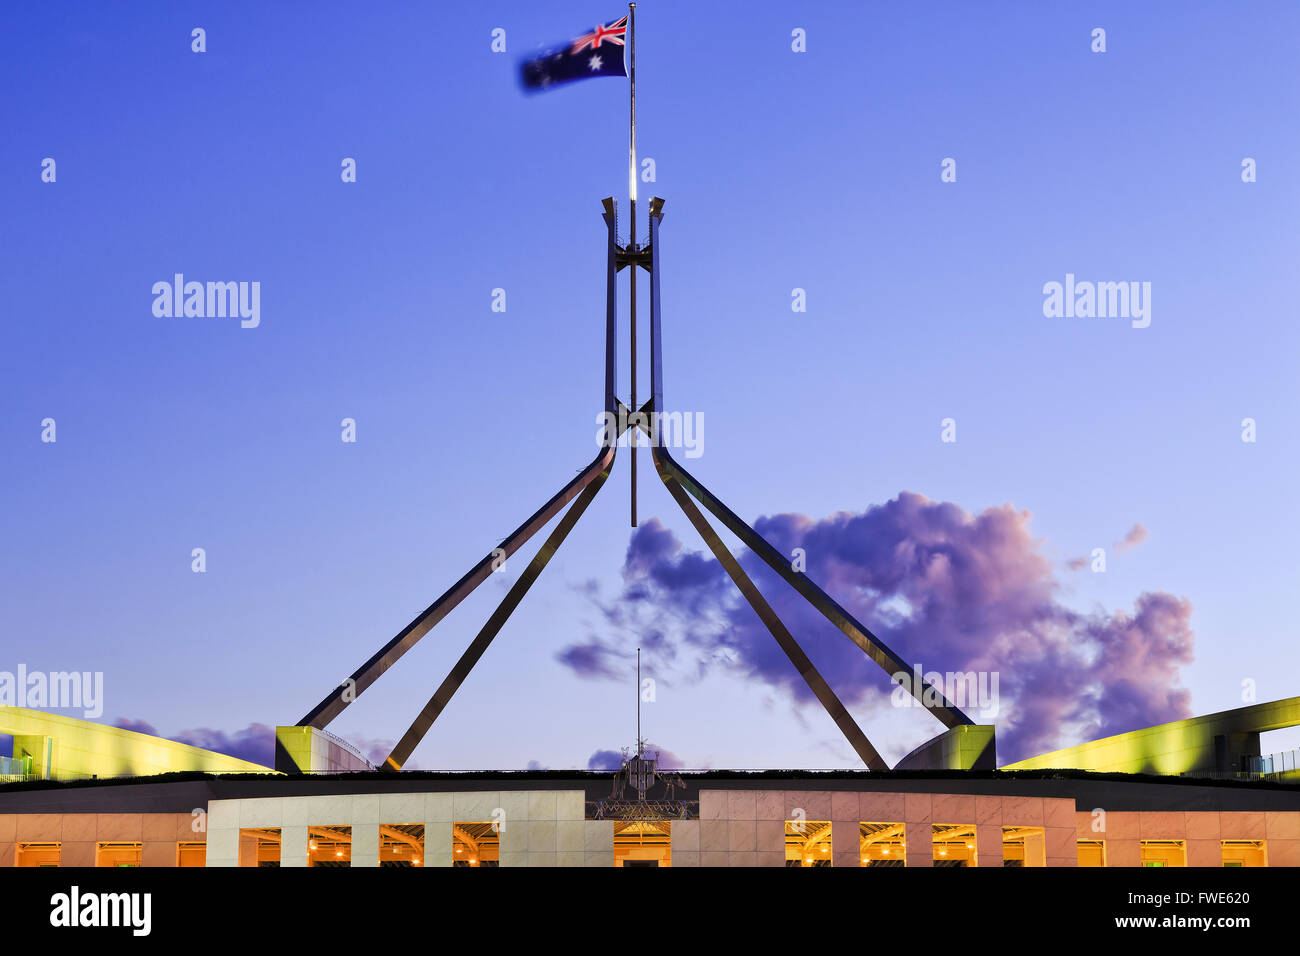 roof top part of Canberra parliament house - flagpole on four legs with flag and coat of arms at susnet with illumination. - Stock Image